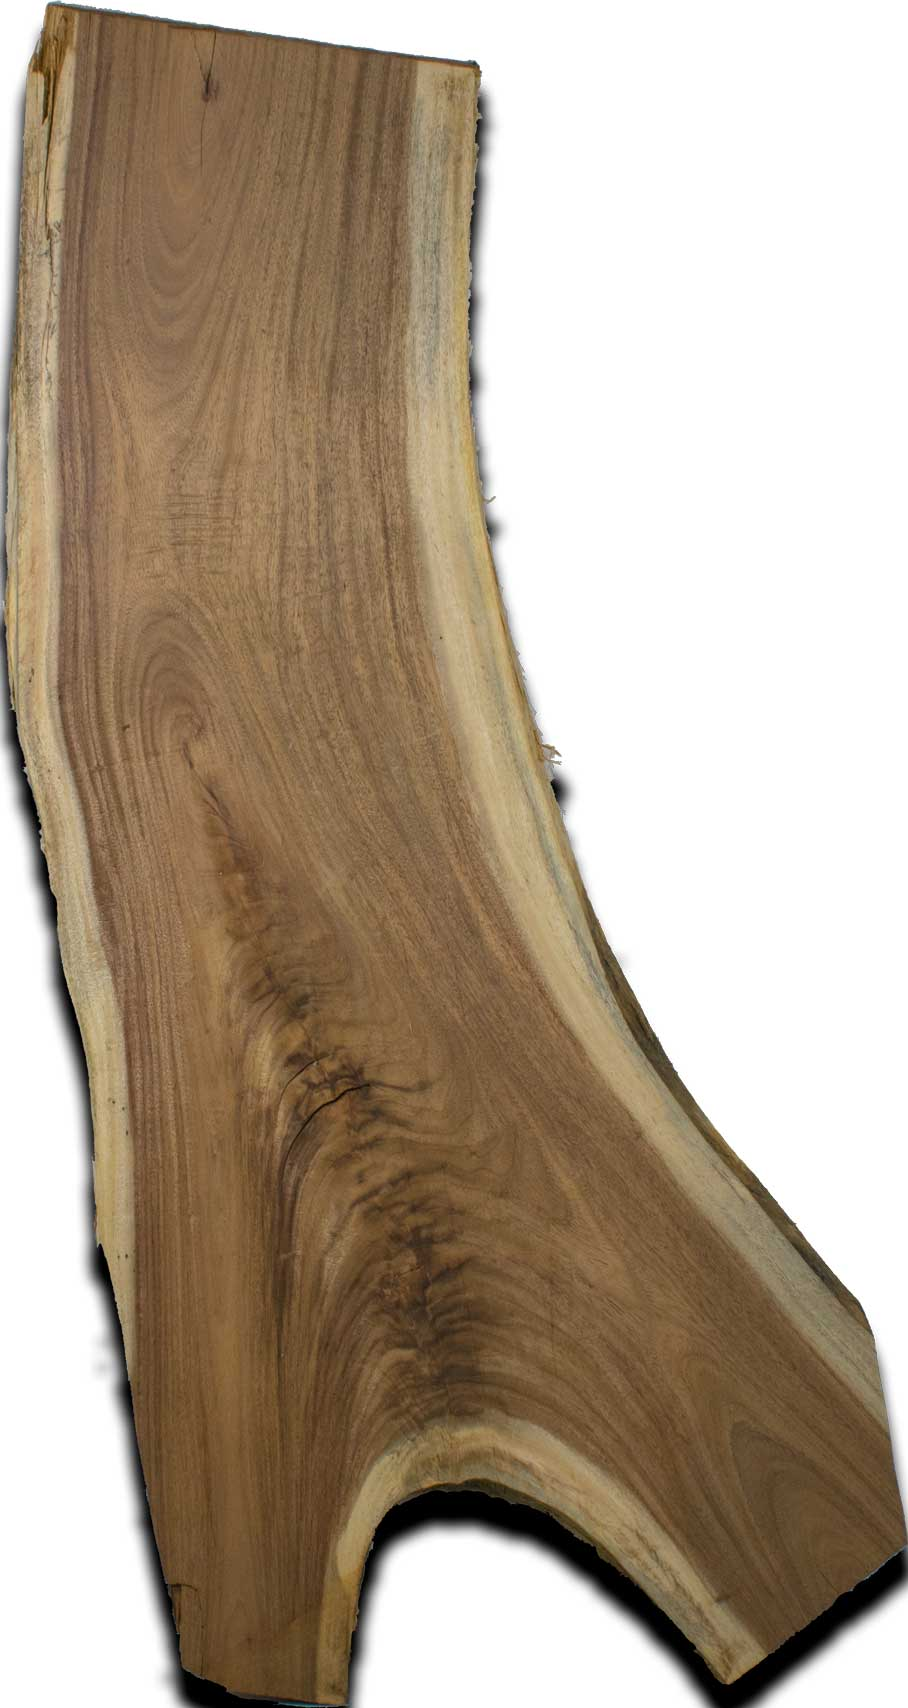 Albizia Live Edge Wood Slab